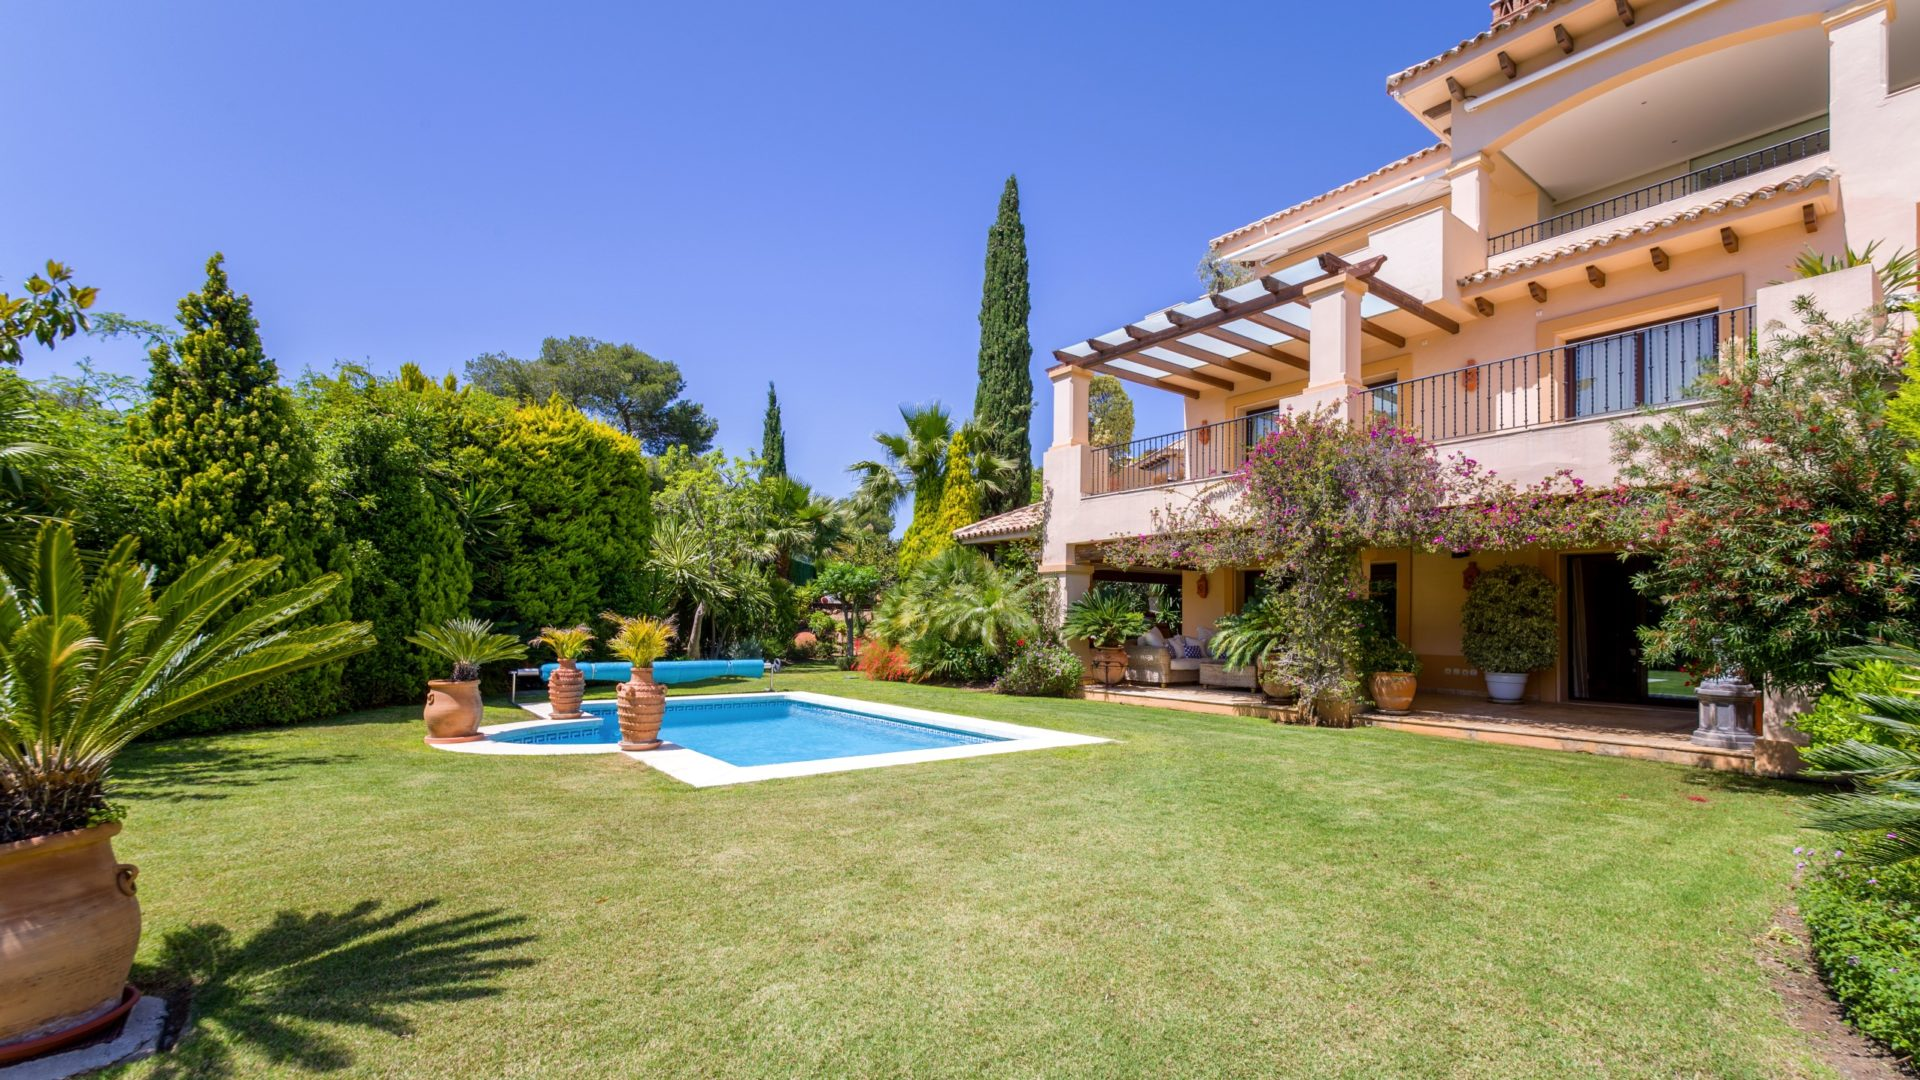 Luxury garden apartment in 5 star aloha park nueva - Luxury homes marbella ...